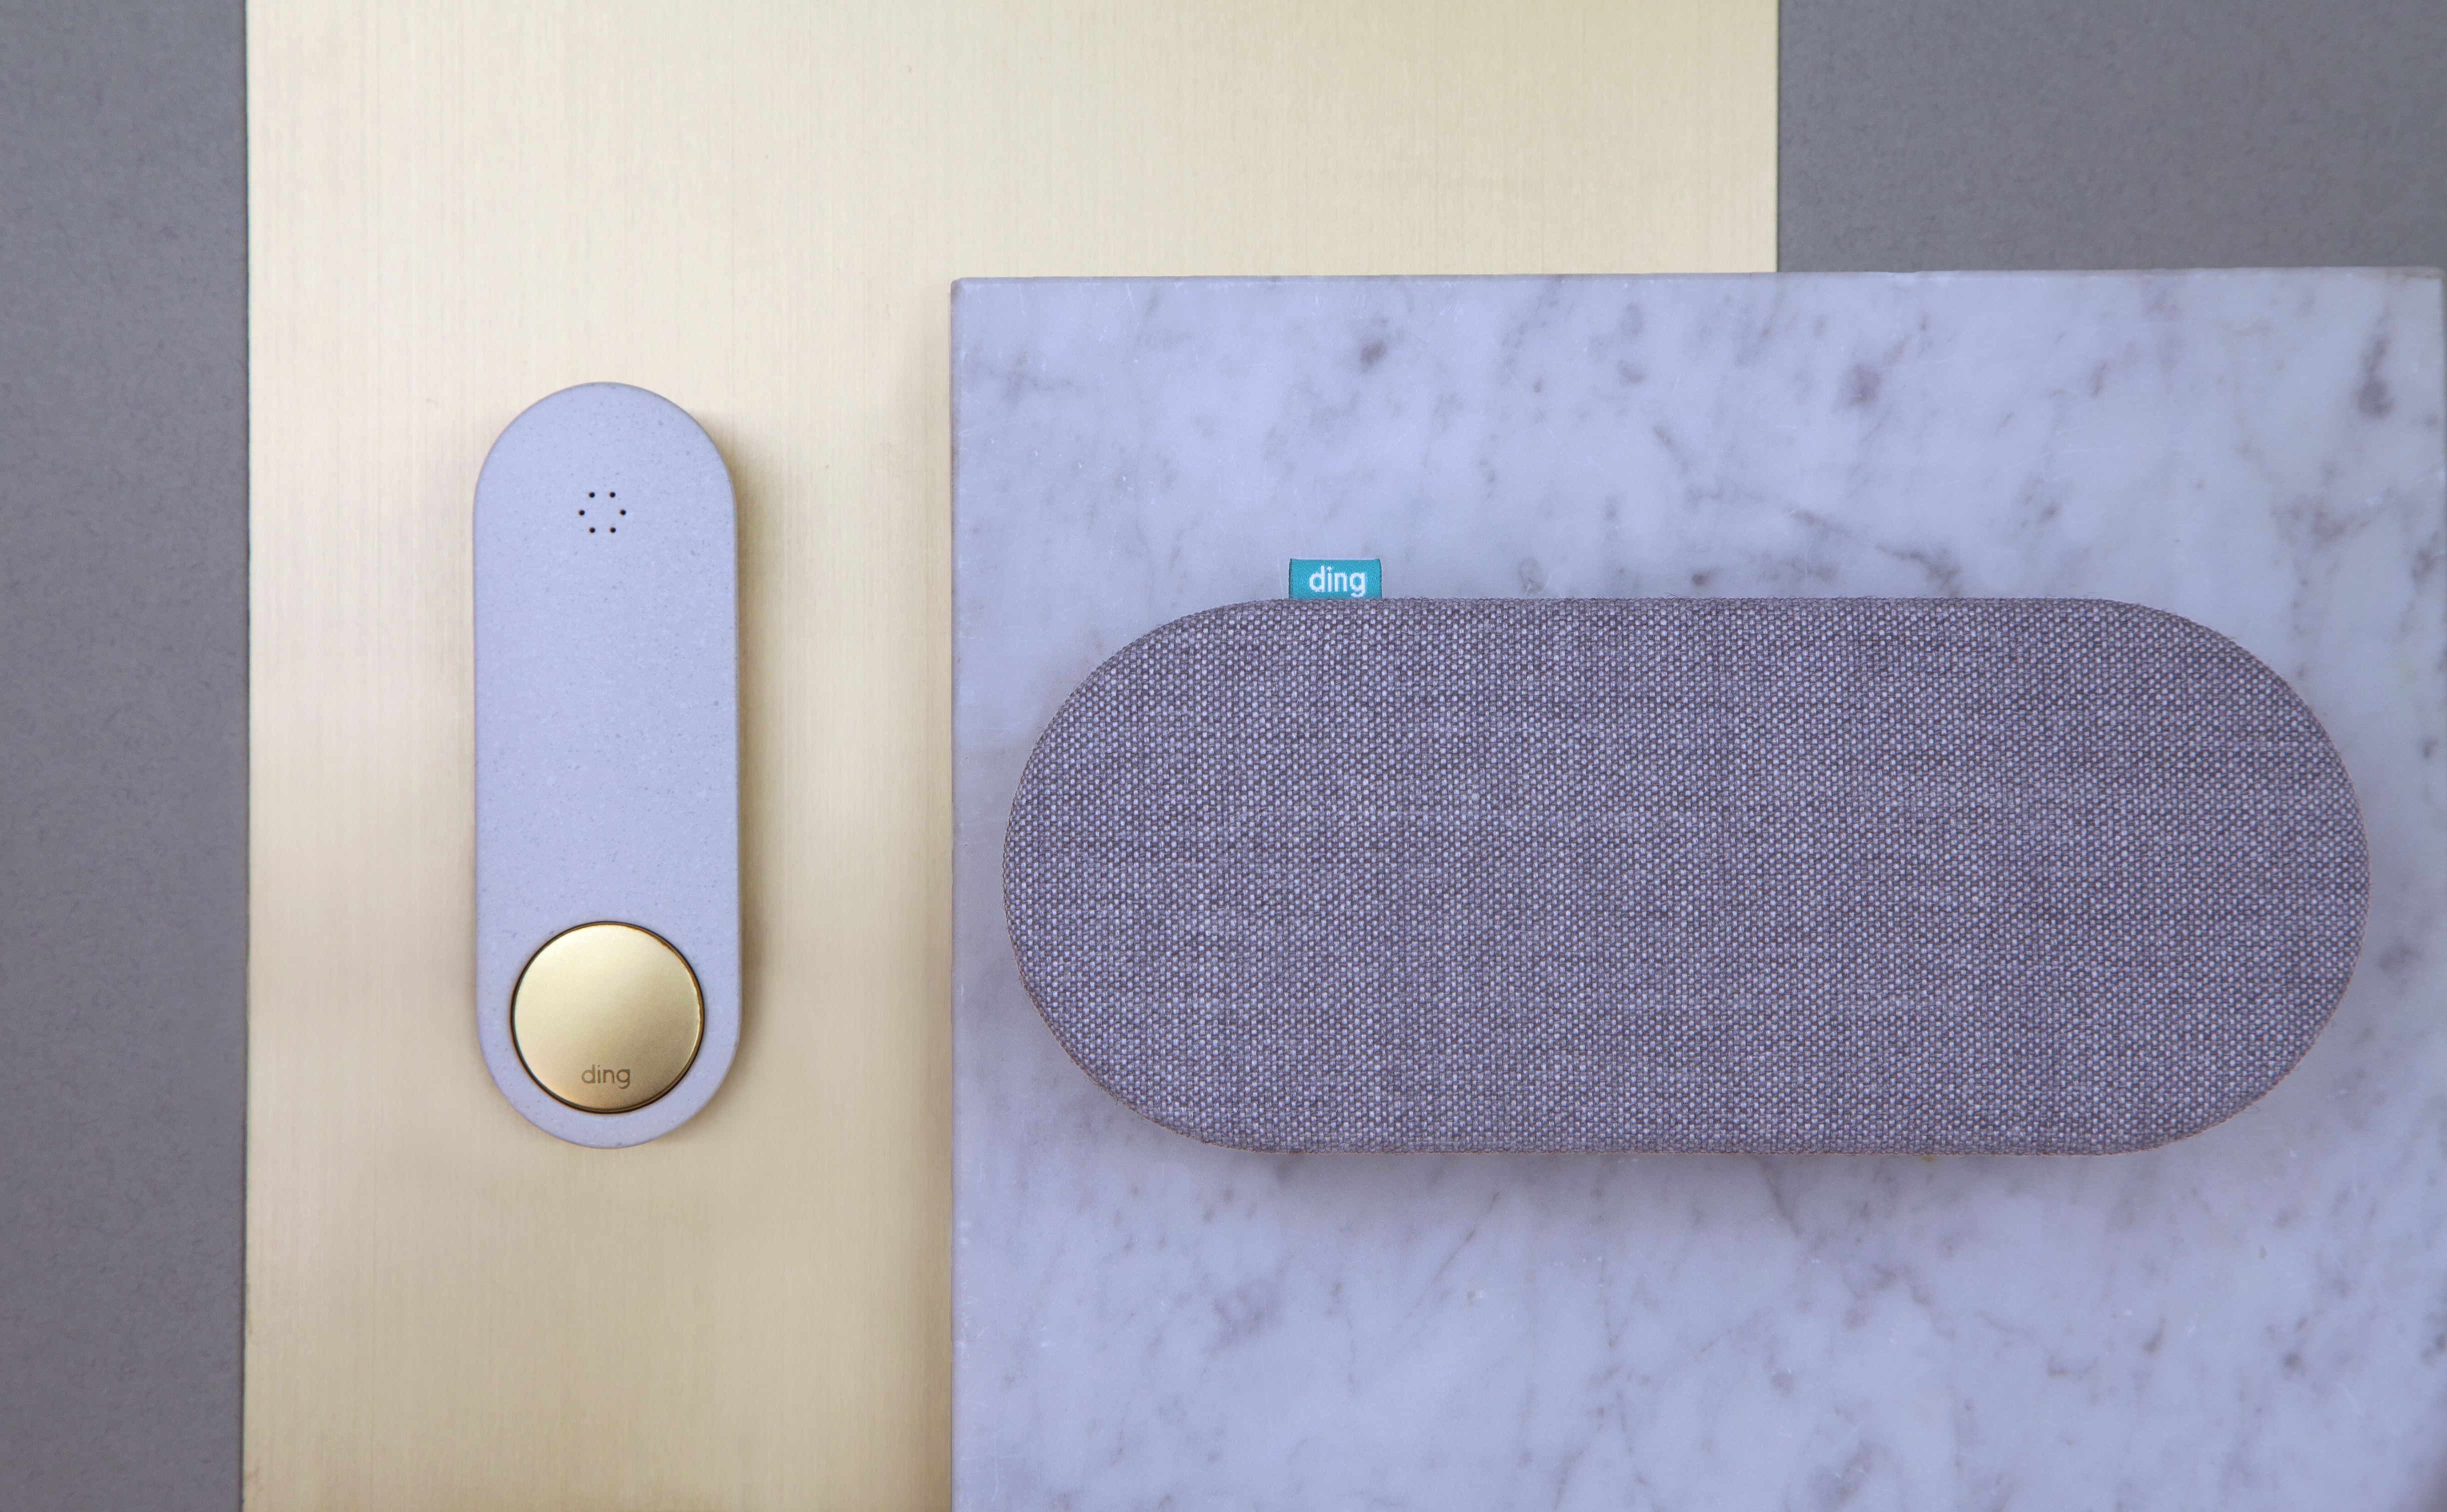 Ding's 'smart enough' doorbell raises $345k+ on Seedrs